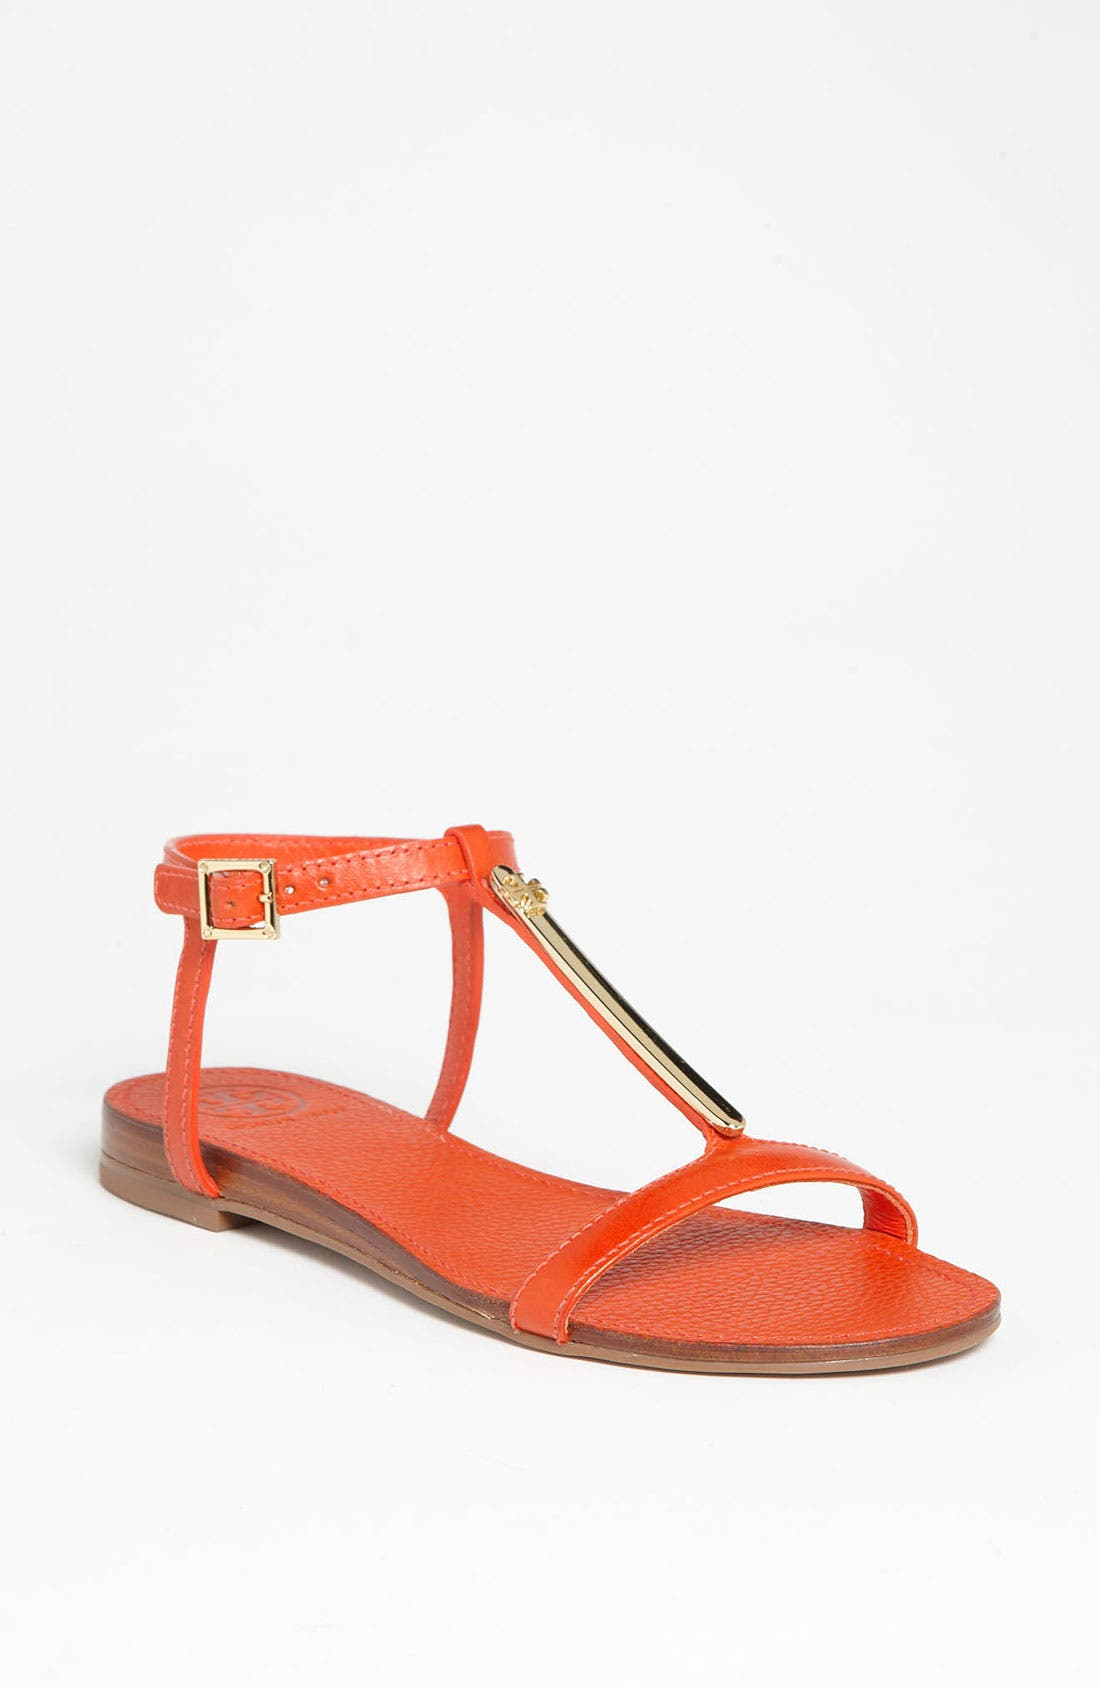 Alternate Image 1 Selected - Tory Burch 'Pacey' Sandal